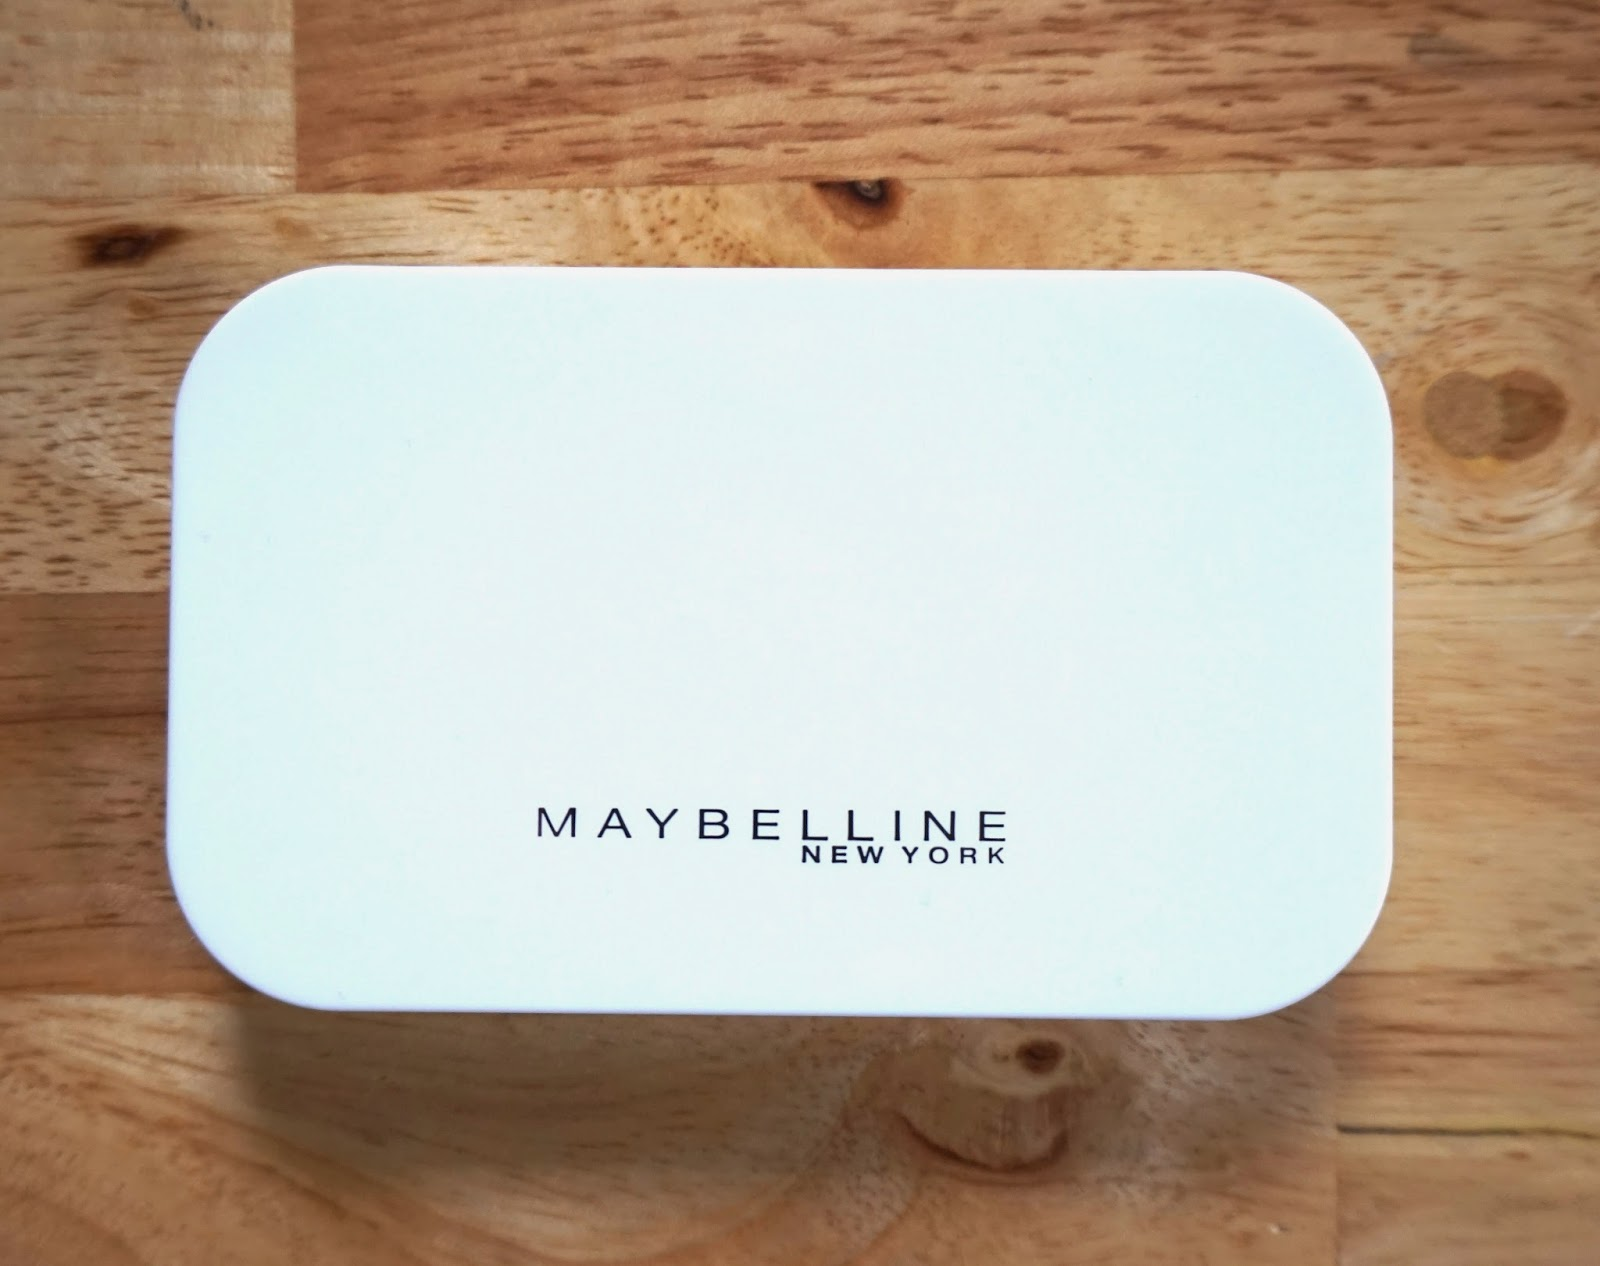 Maybelline White Superfresh Powder Foundation in Honey 04 Review + ...